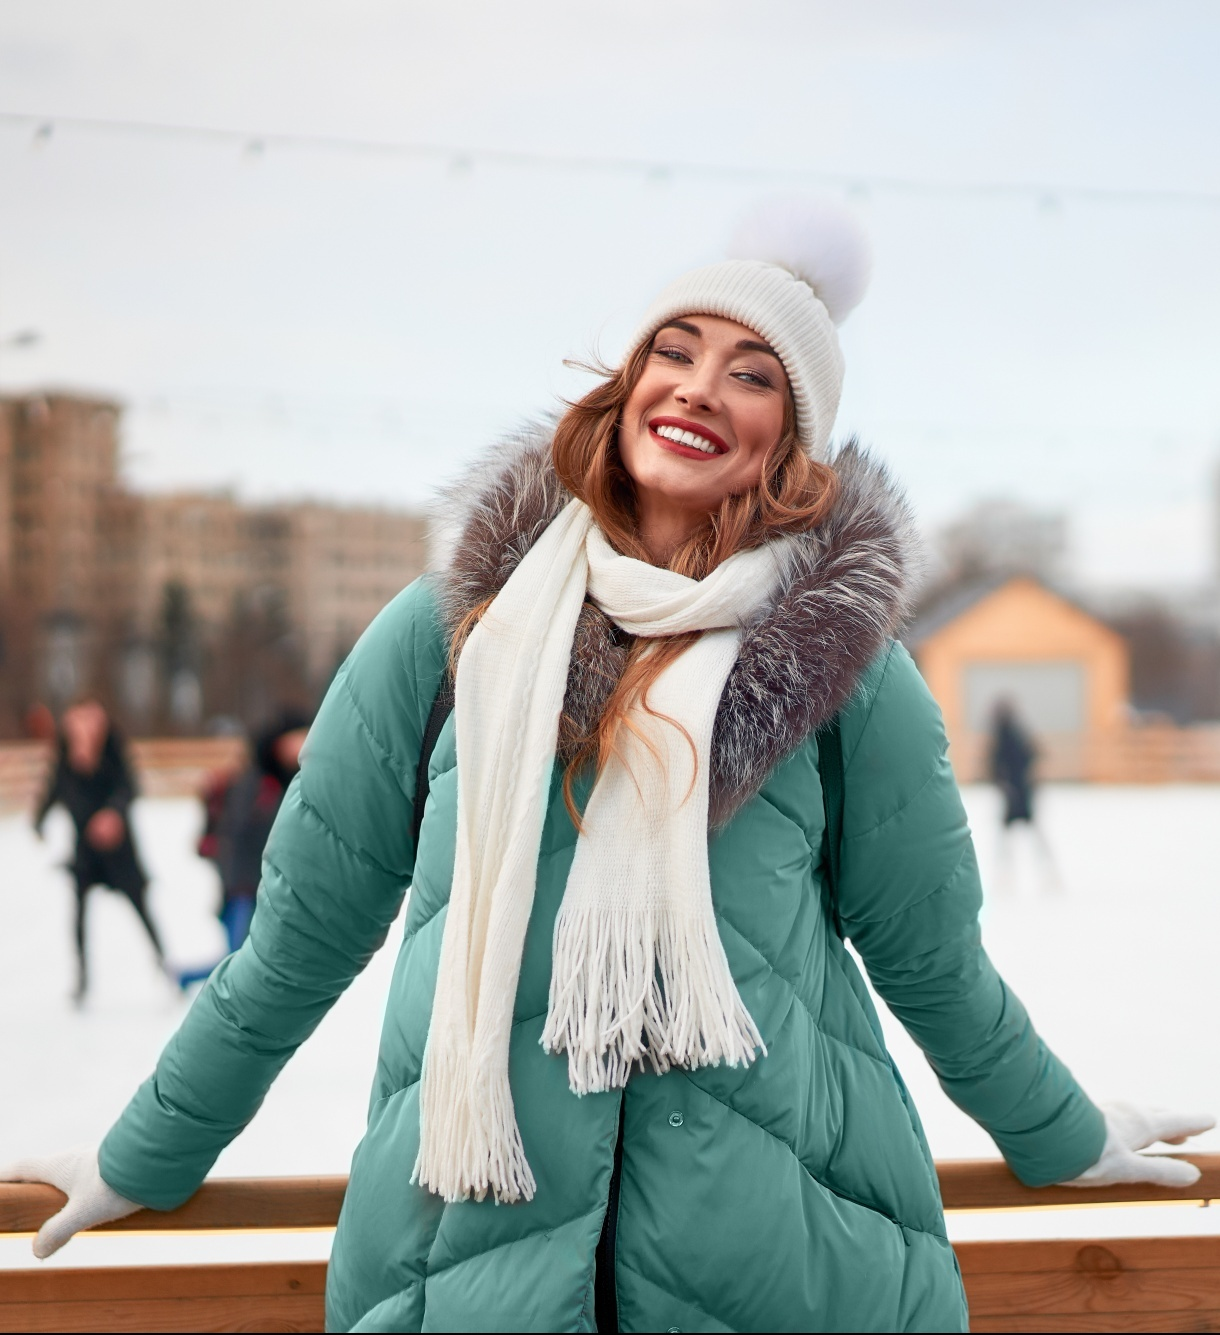 benefits of being outside during winter, middle aged woman at ice rink in teal puffer jacket and white hat and scarf